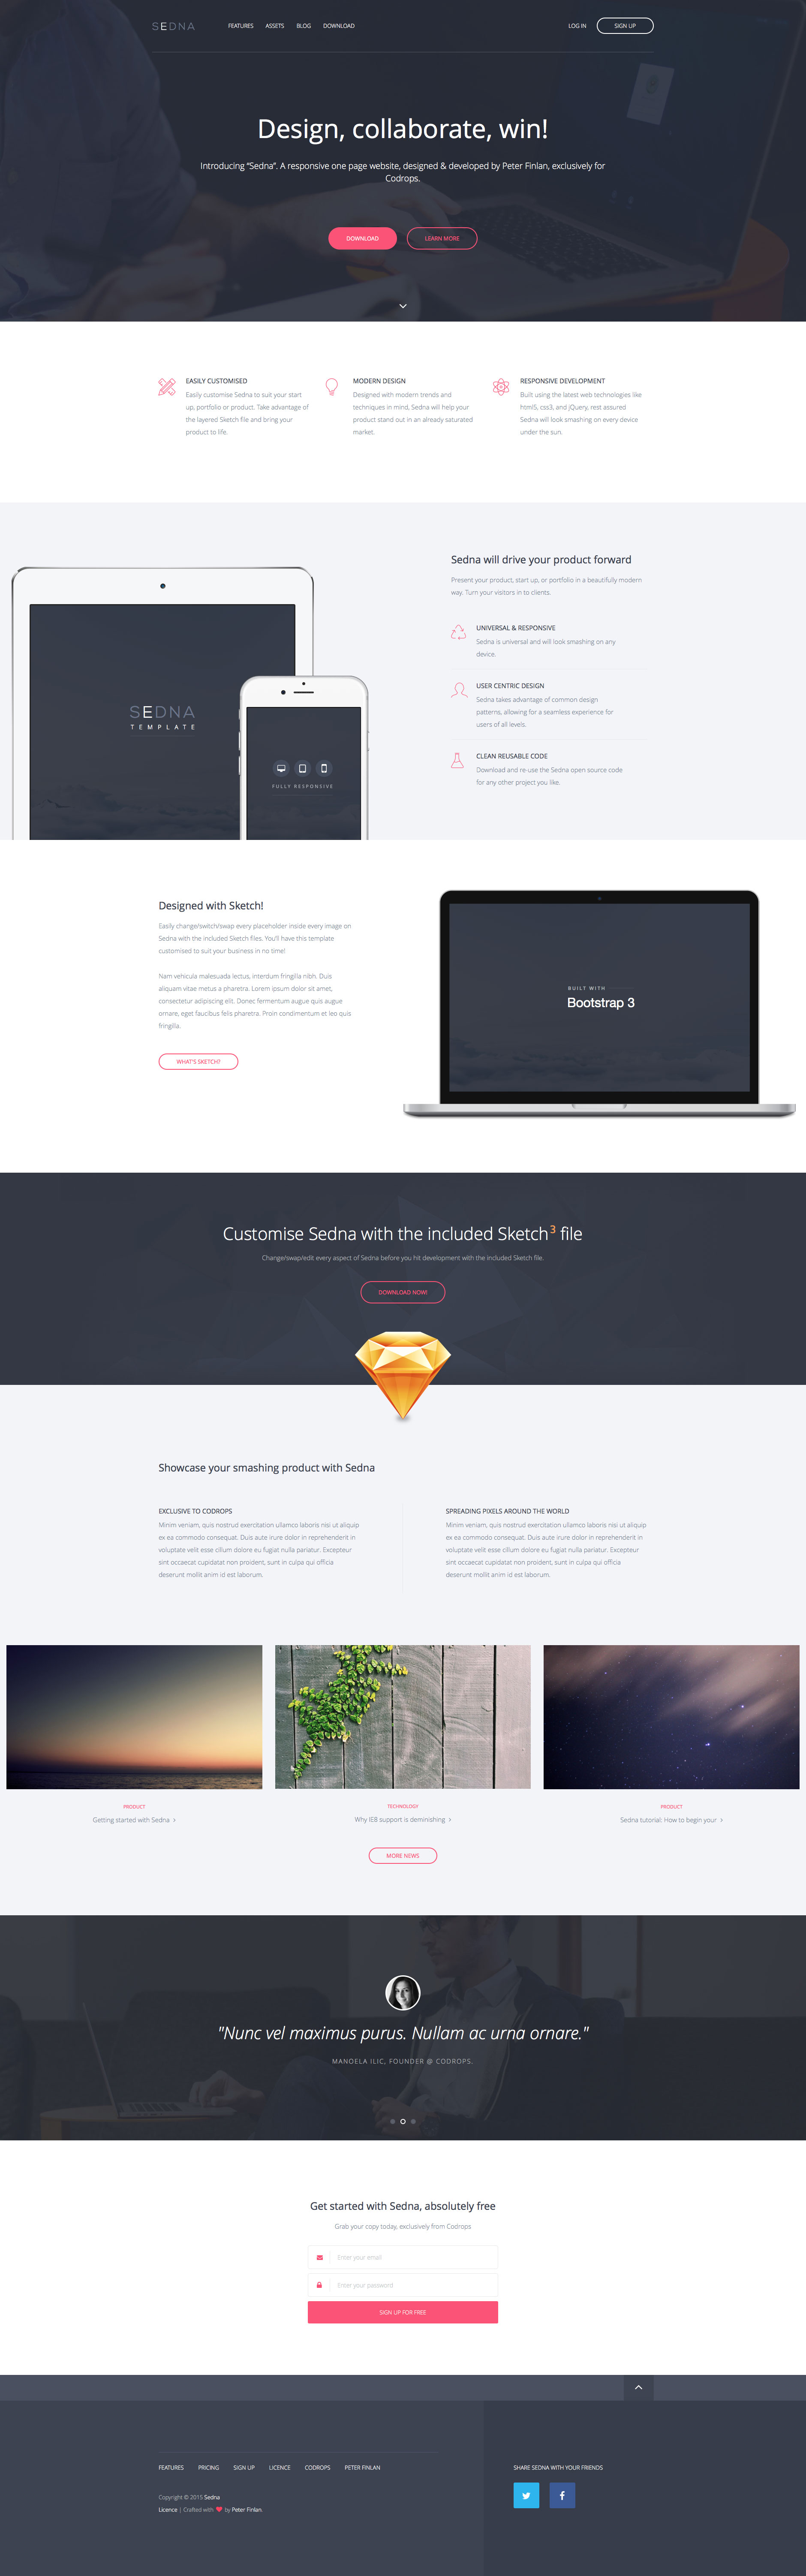 Sedna is a beautiful responsive HTML5 landing page website template made with Bootstrap 3. It's clean and nice design makes for a fitting template usable for many different scenarios.